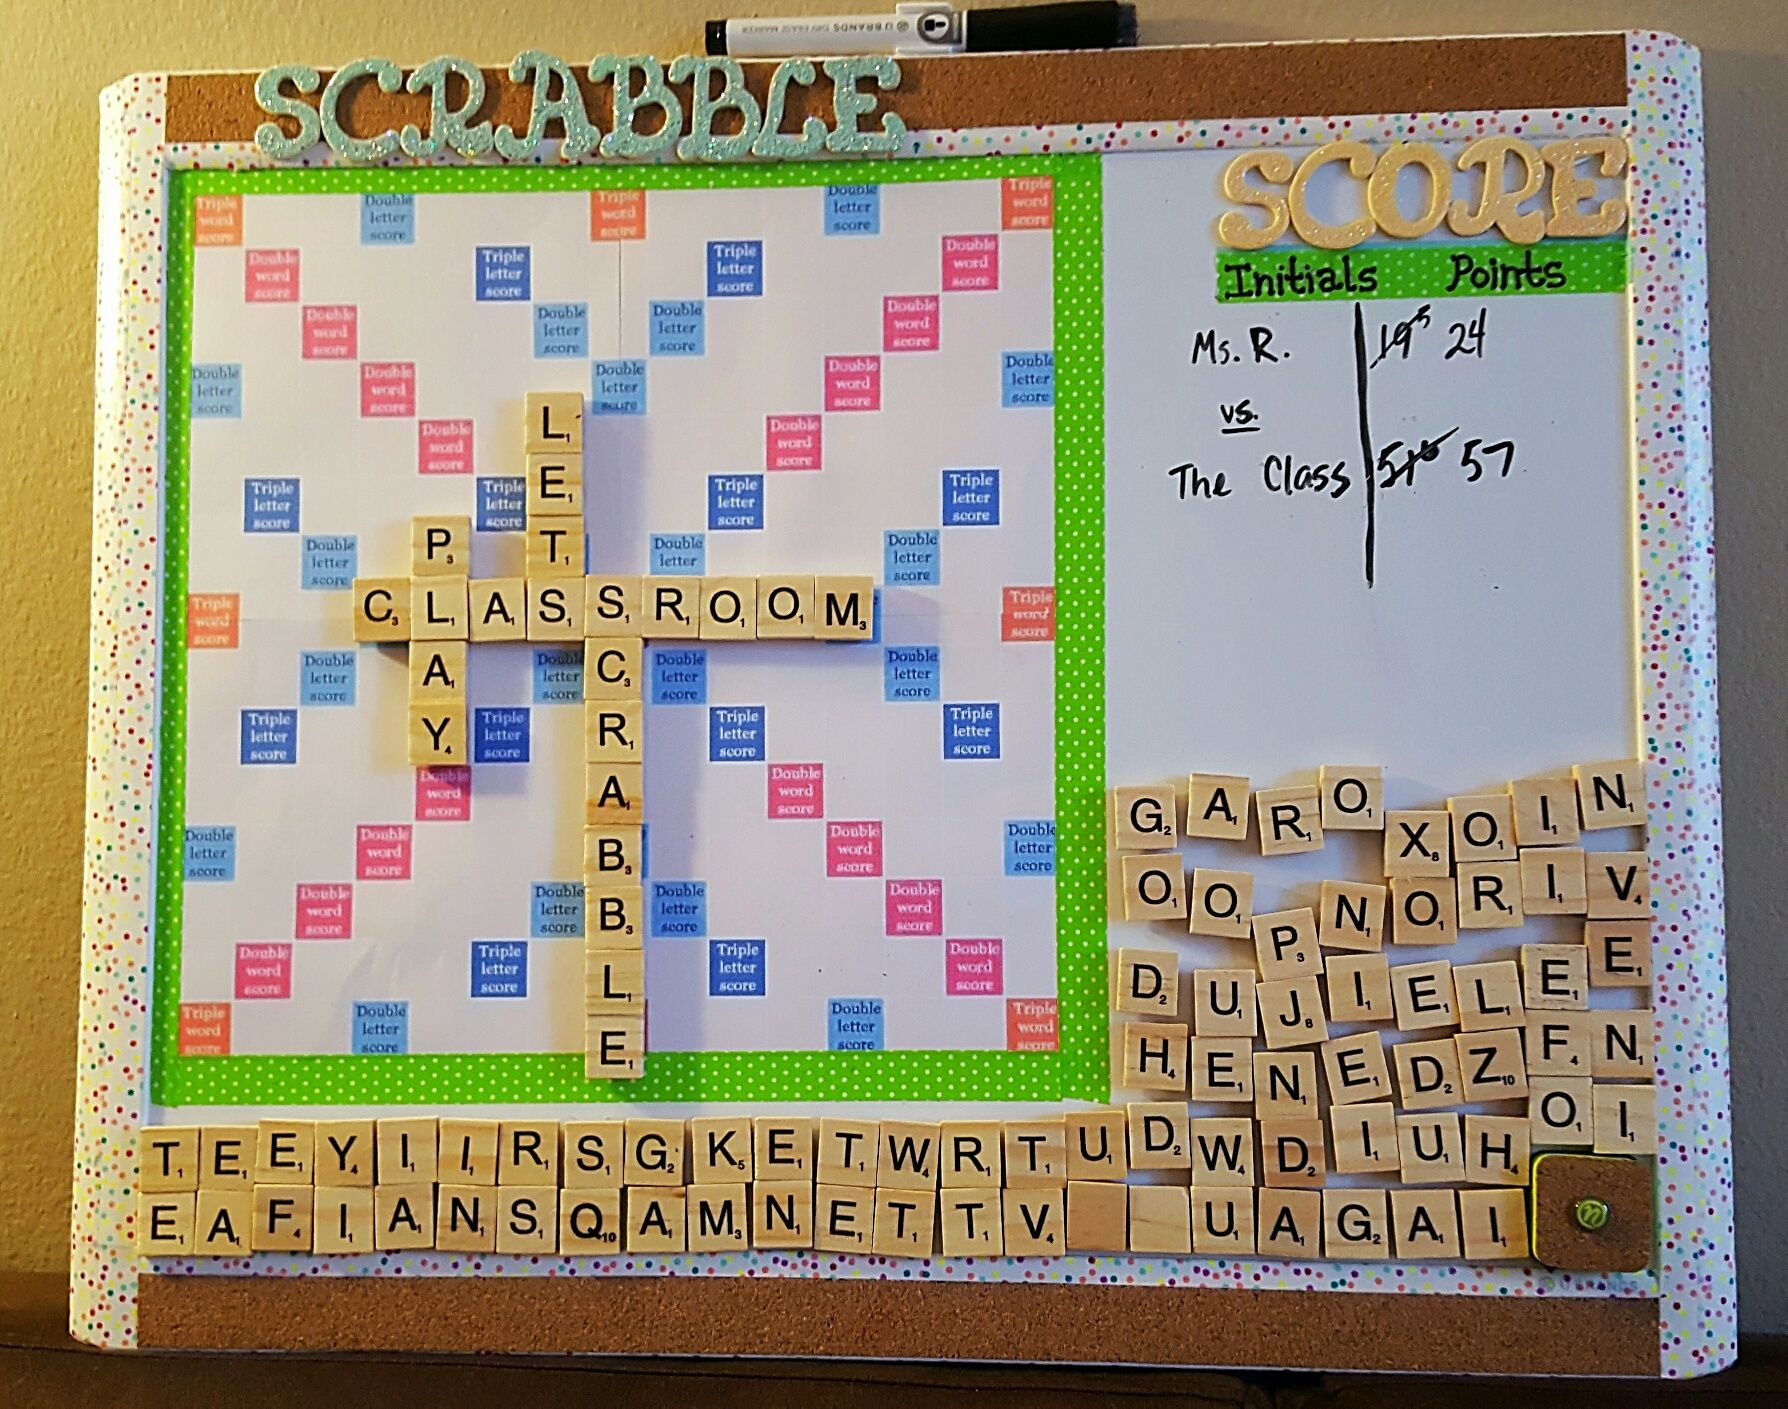 Magnetic Scrabble Board For The Classroom I Made It From A Magnetic Whiteboard Walmart Used Washi Ta Classroom Games Favorite Board Games Board Game Themes